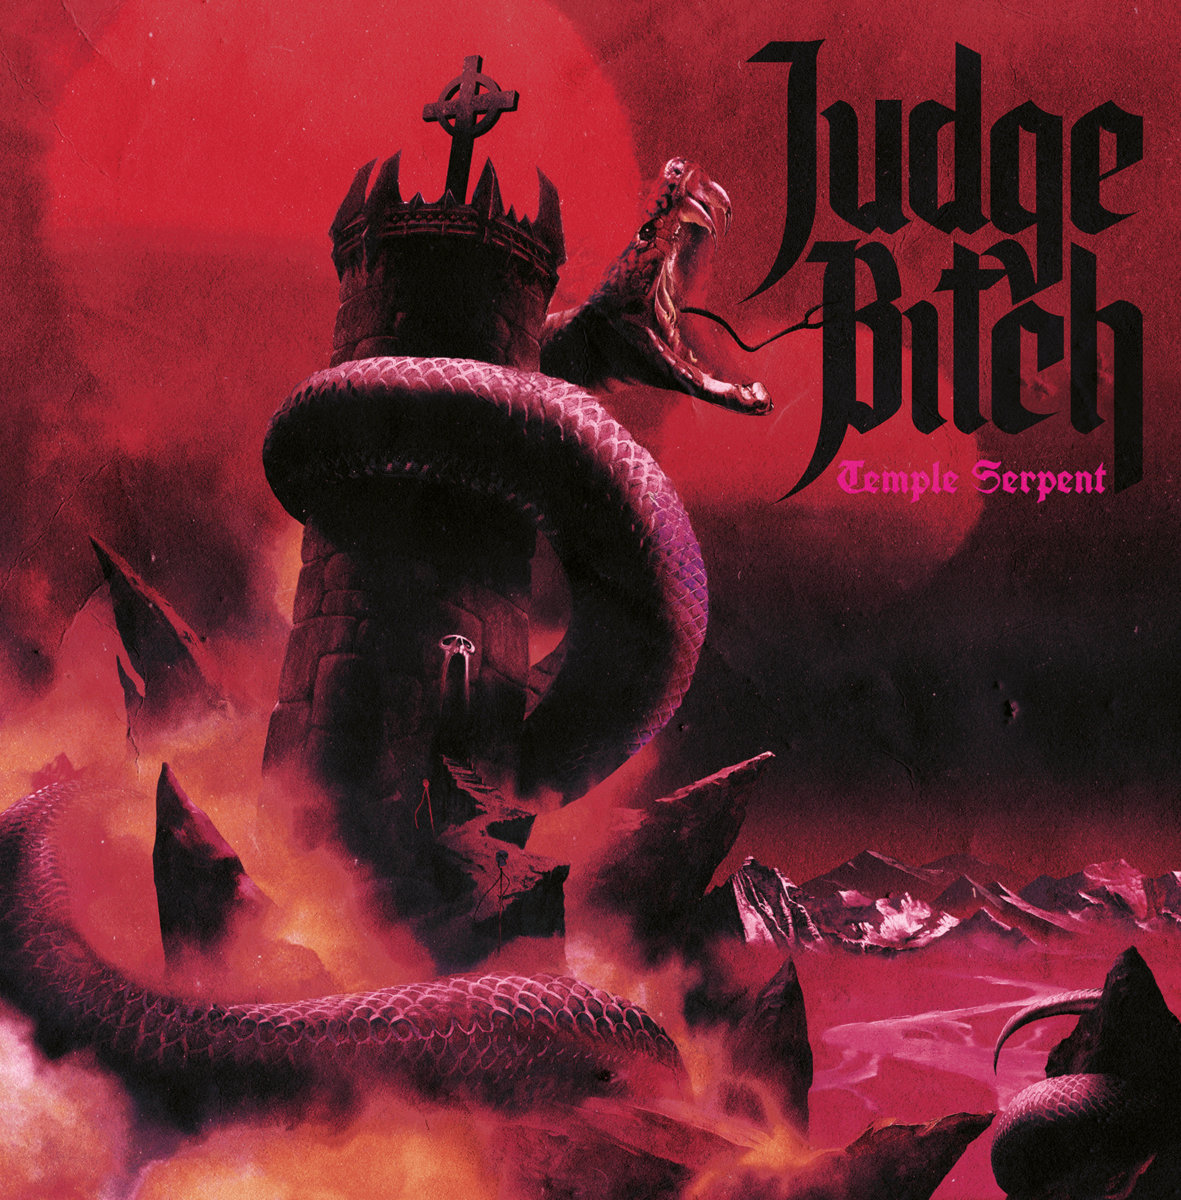 a0091923993 10 - Temple Serpent by Judge Bitch - Full Album Review